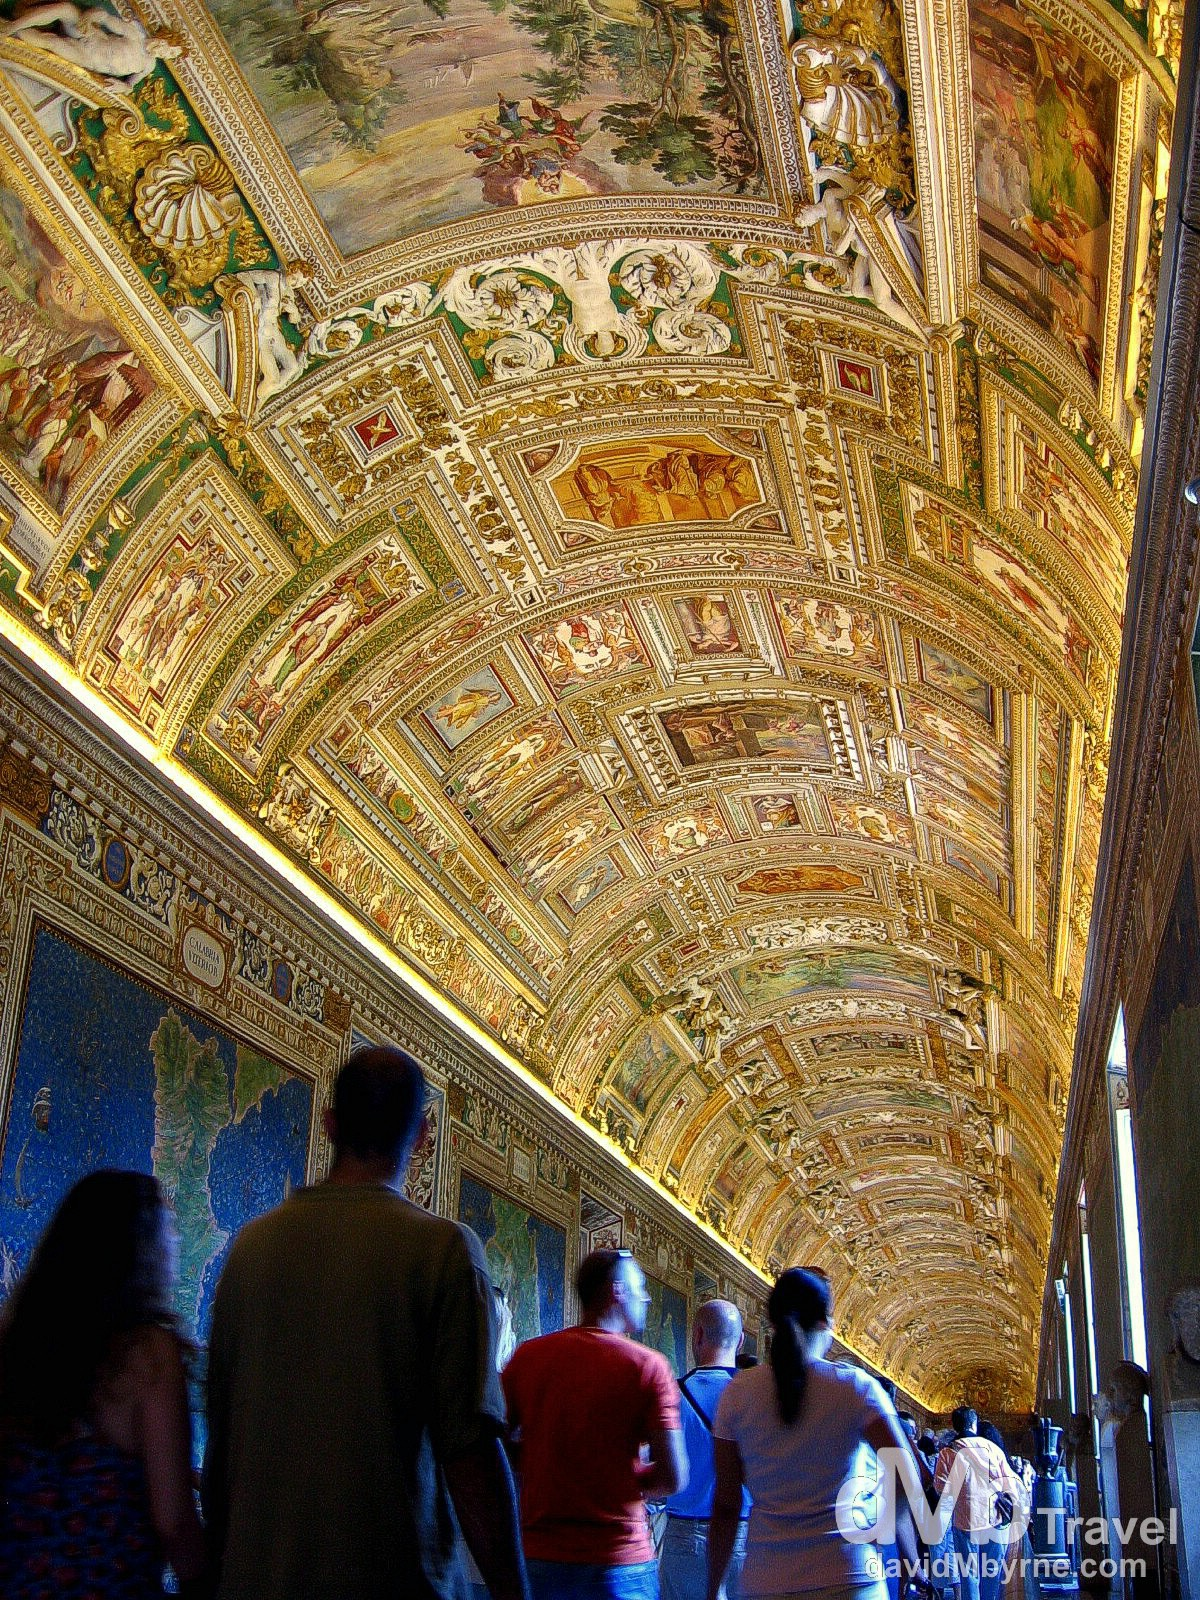 Galleria delle Carte Geografiche (Gallery of Maps), Vatican Museums, Vatican City